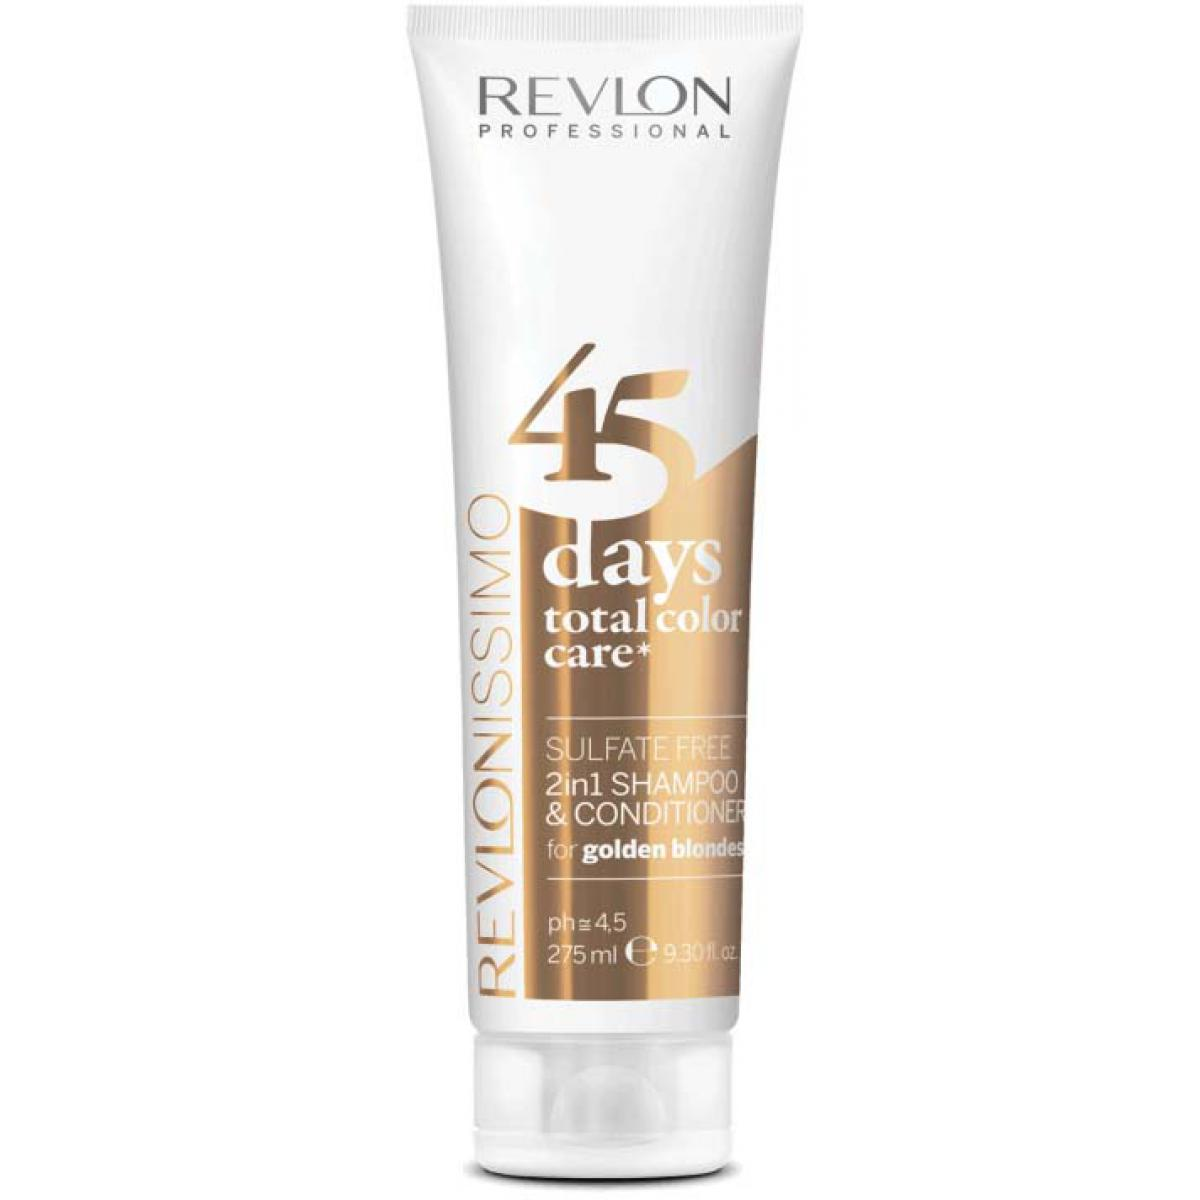 Color Care 45 Days Shampoing et Soin Golden Blondes - Couleur Blond Chaud Revlon